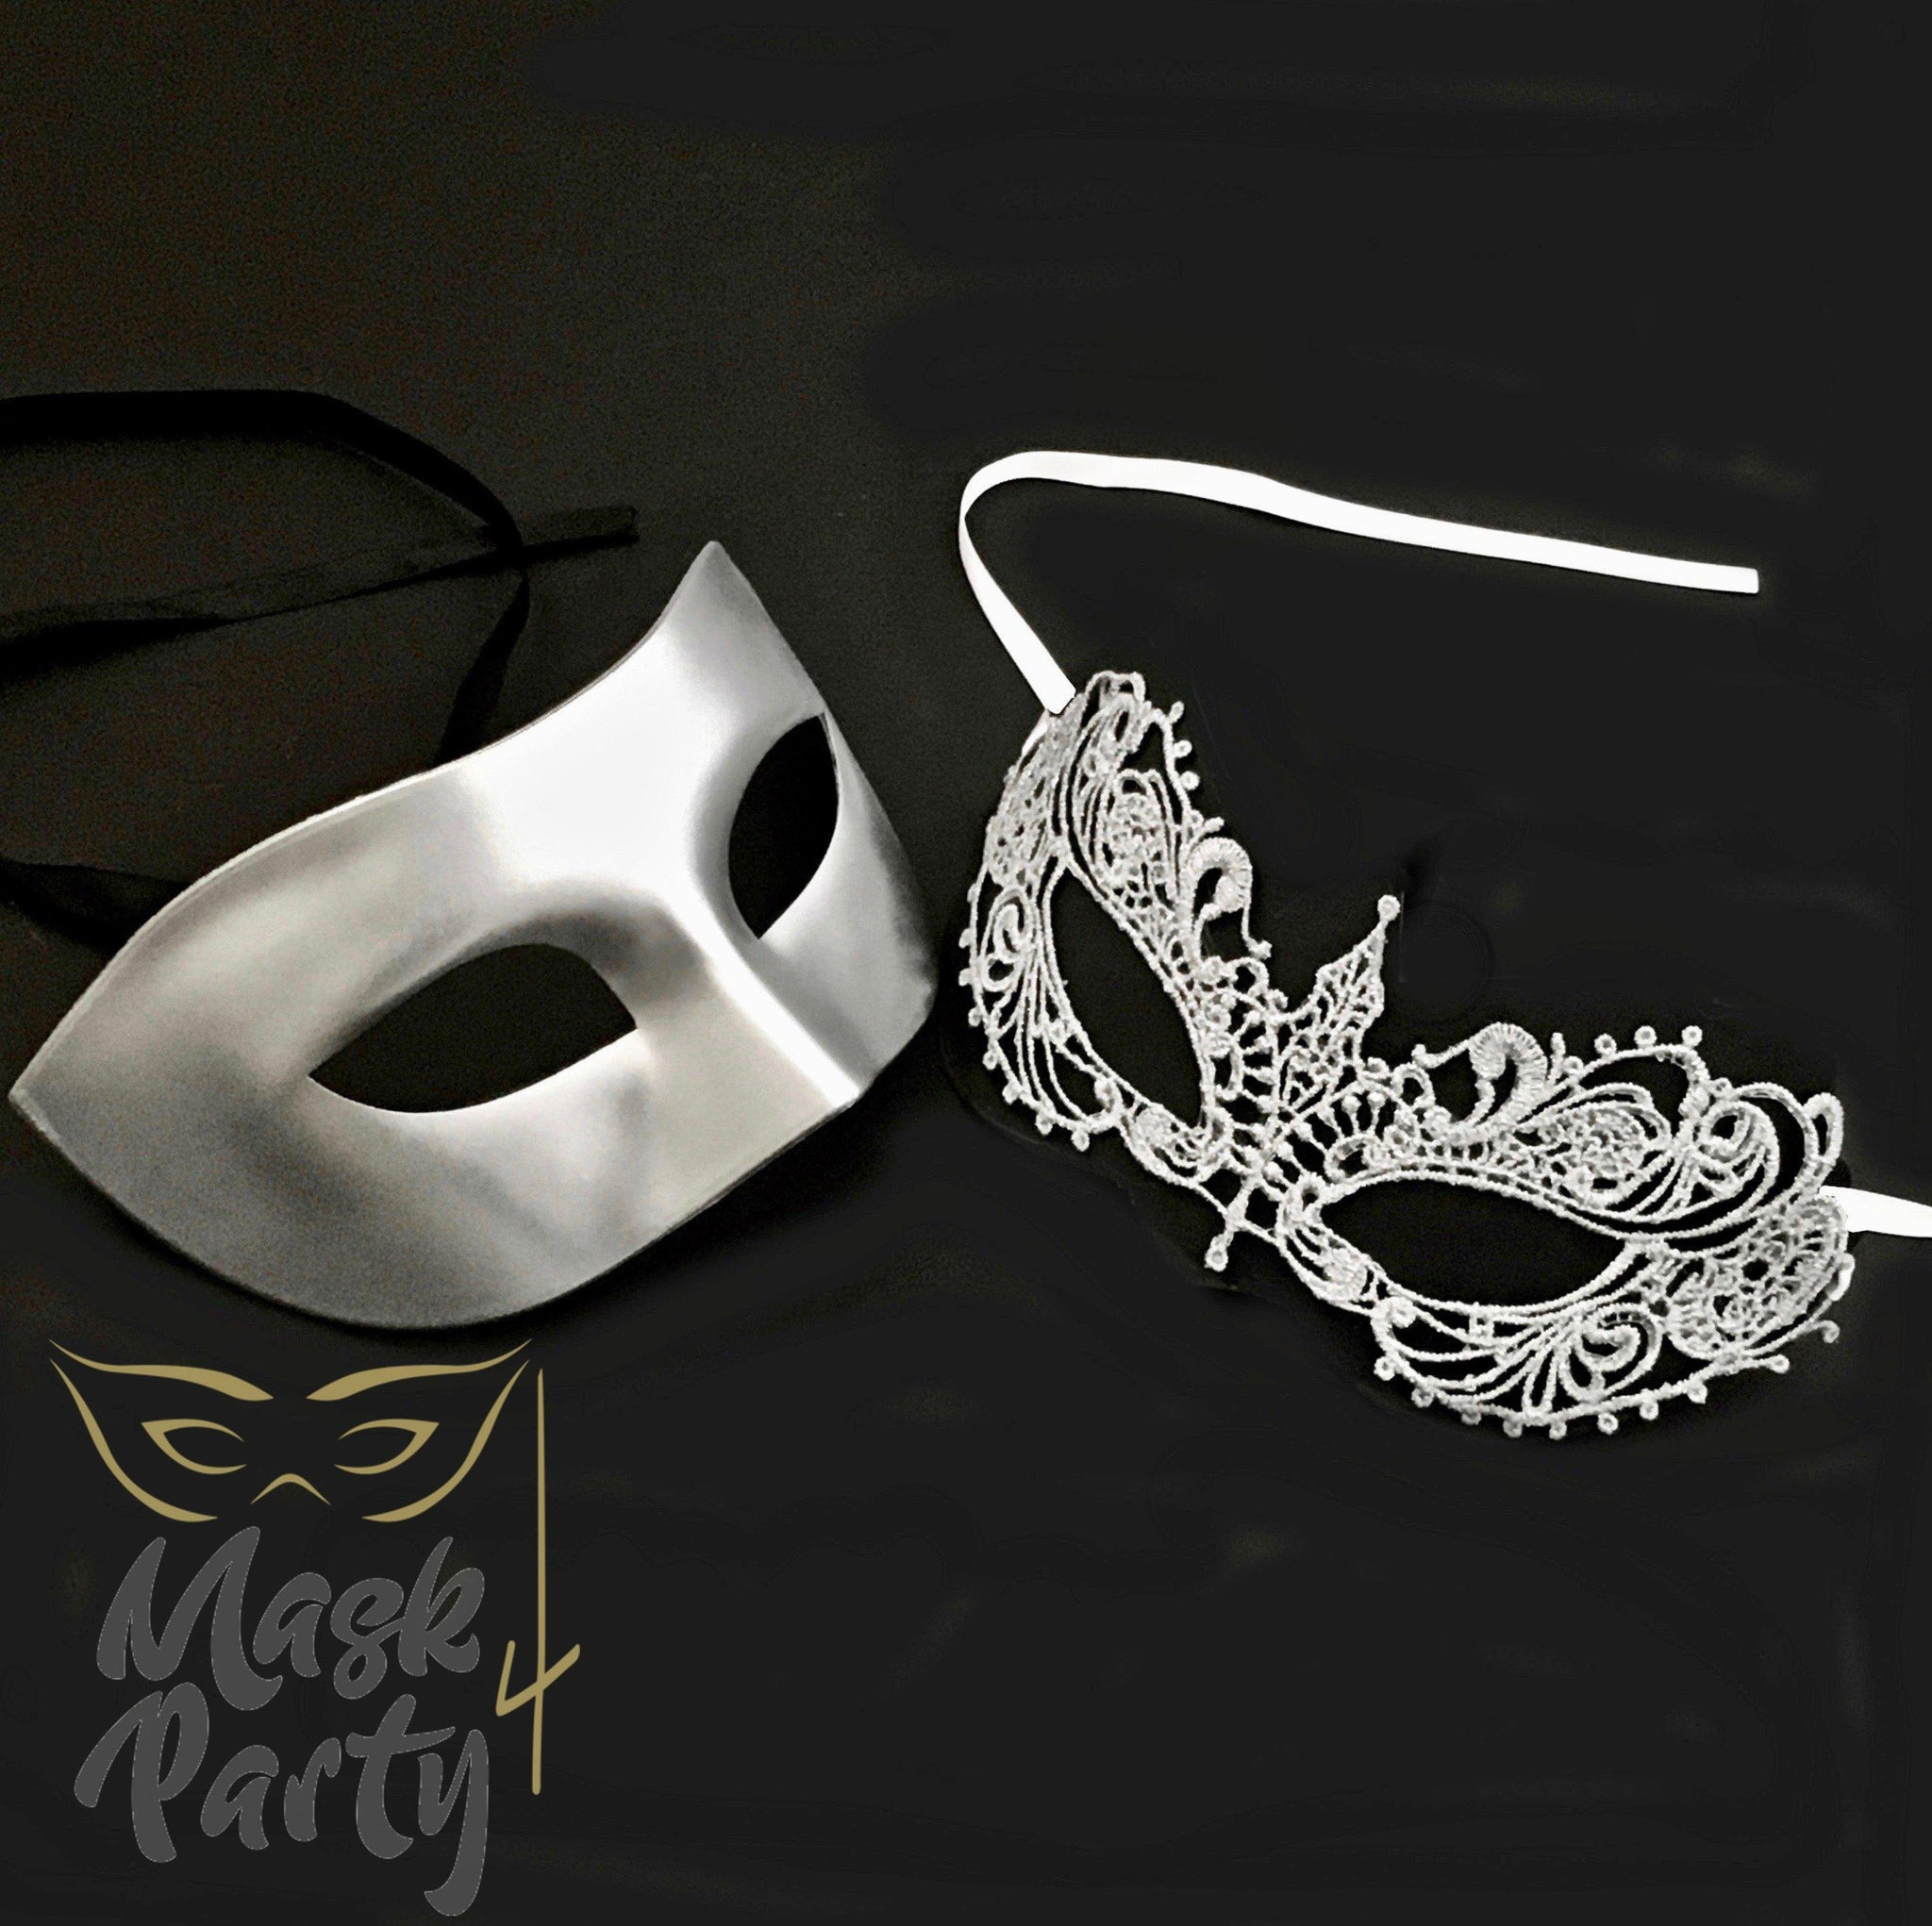 Masquerade Masks - Metallic Eye & Lace - Silver - Mask4Party